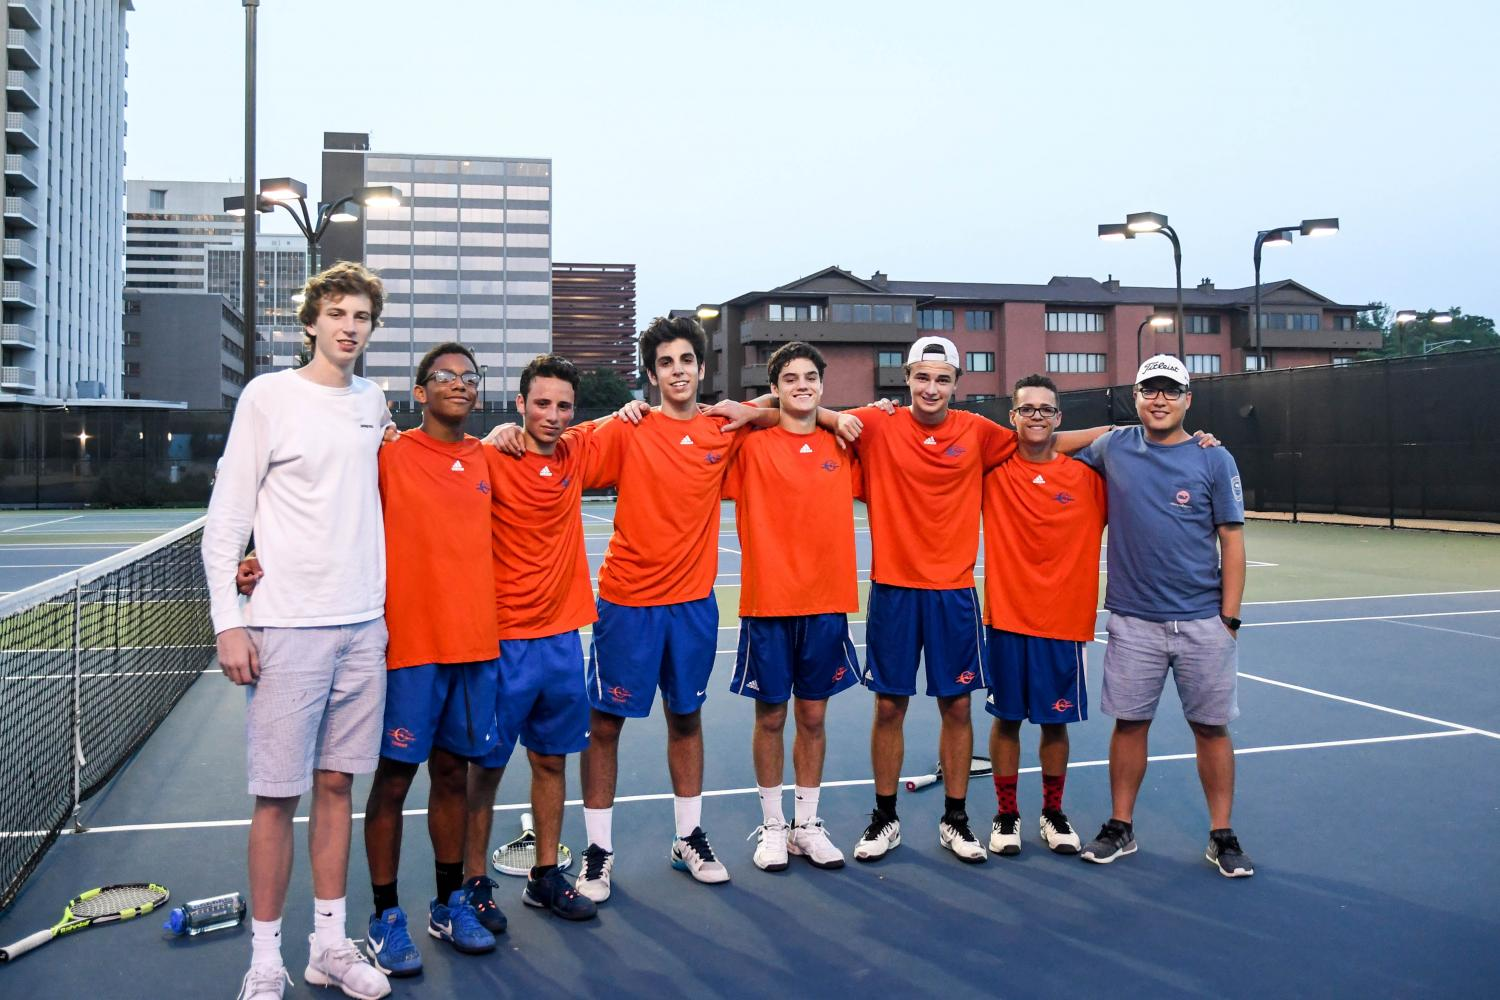 Boys' tennis team at Shaw Park after winning Sectionals